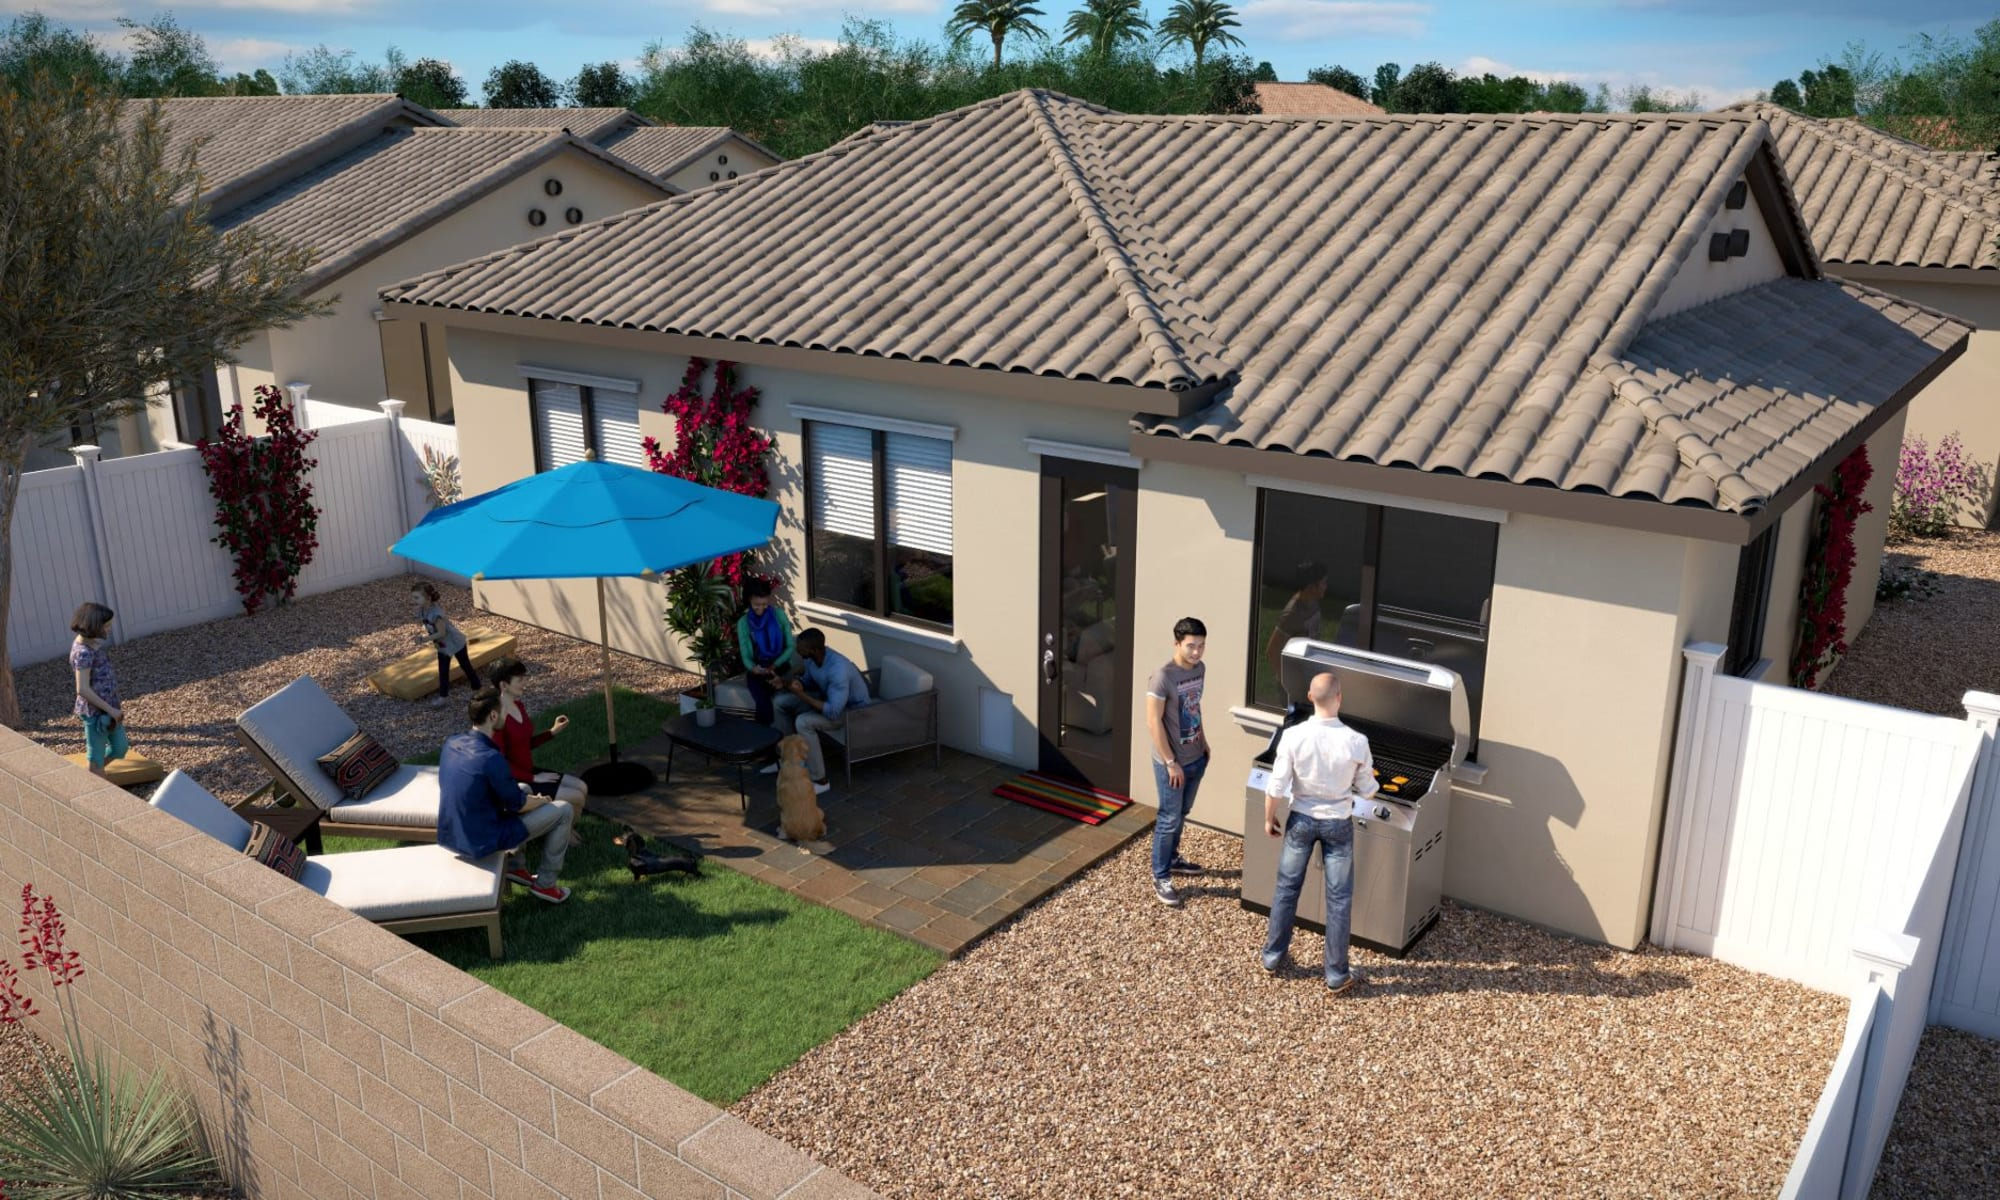 Backyard bbq rendering of TerraLane at Canyon Trails in Goodyear, Arizona